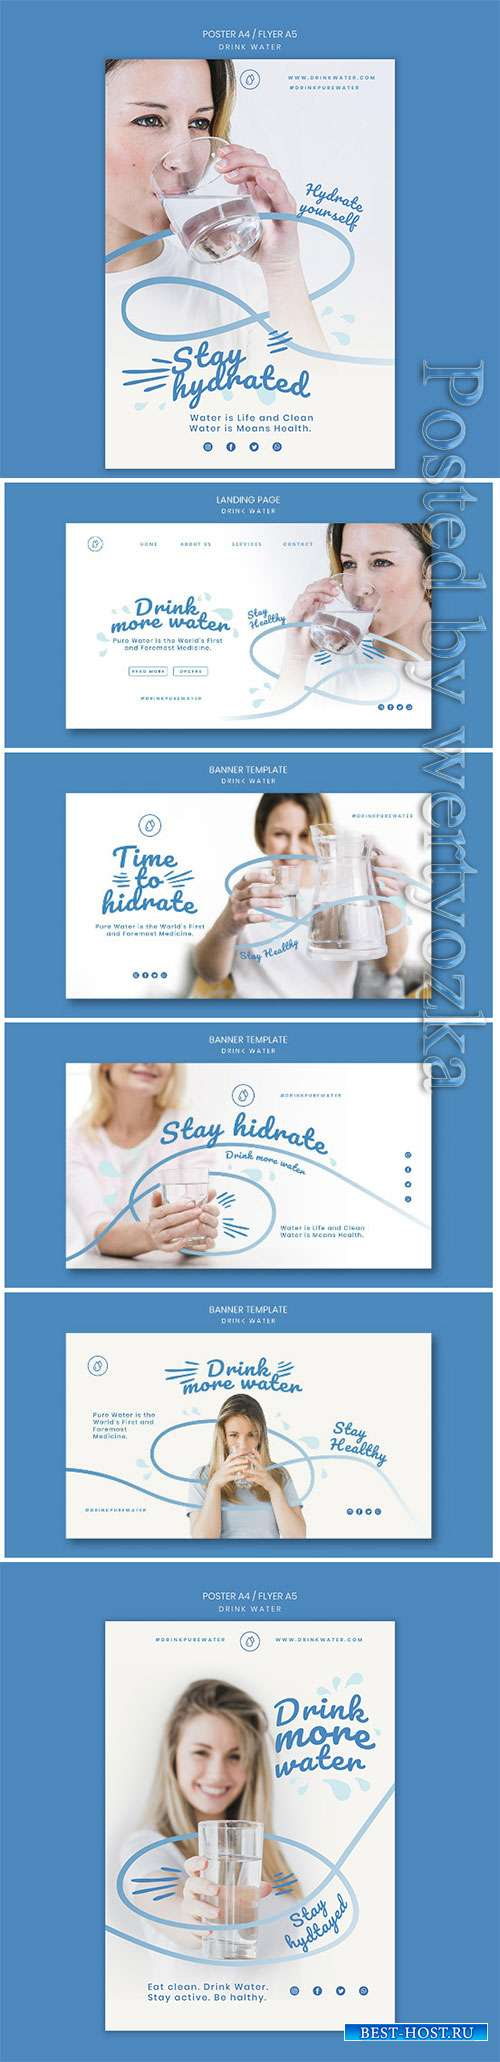 Drink water concept flyer template